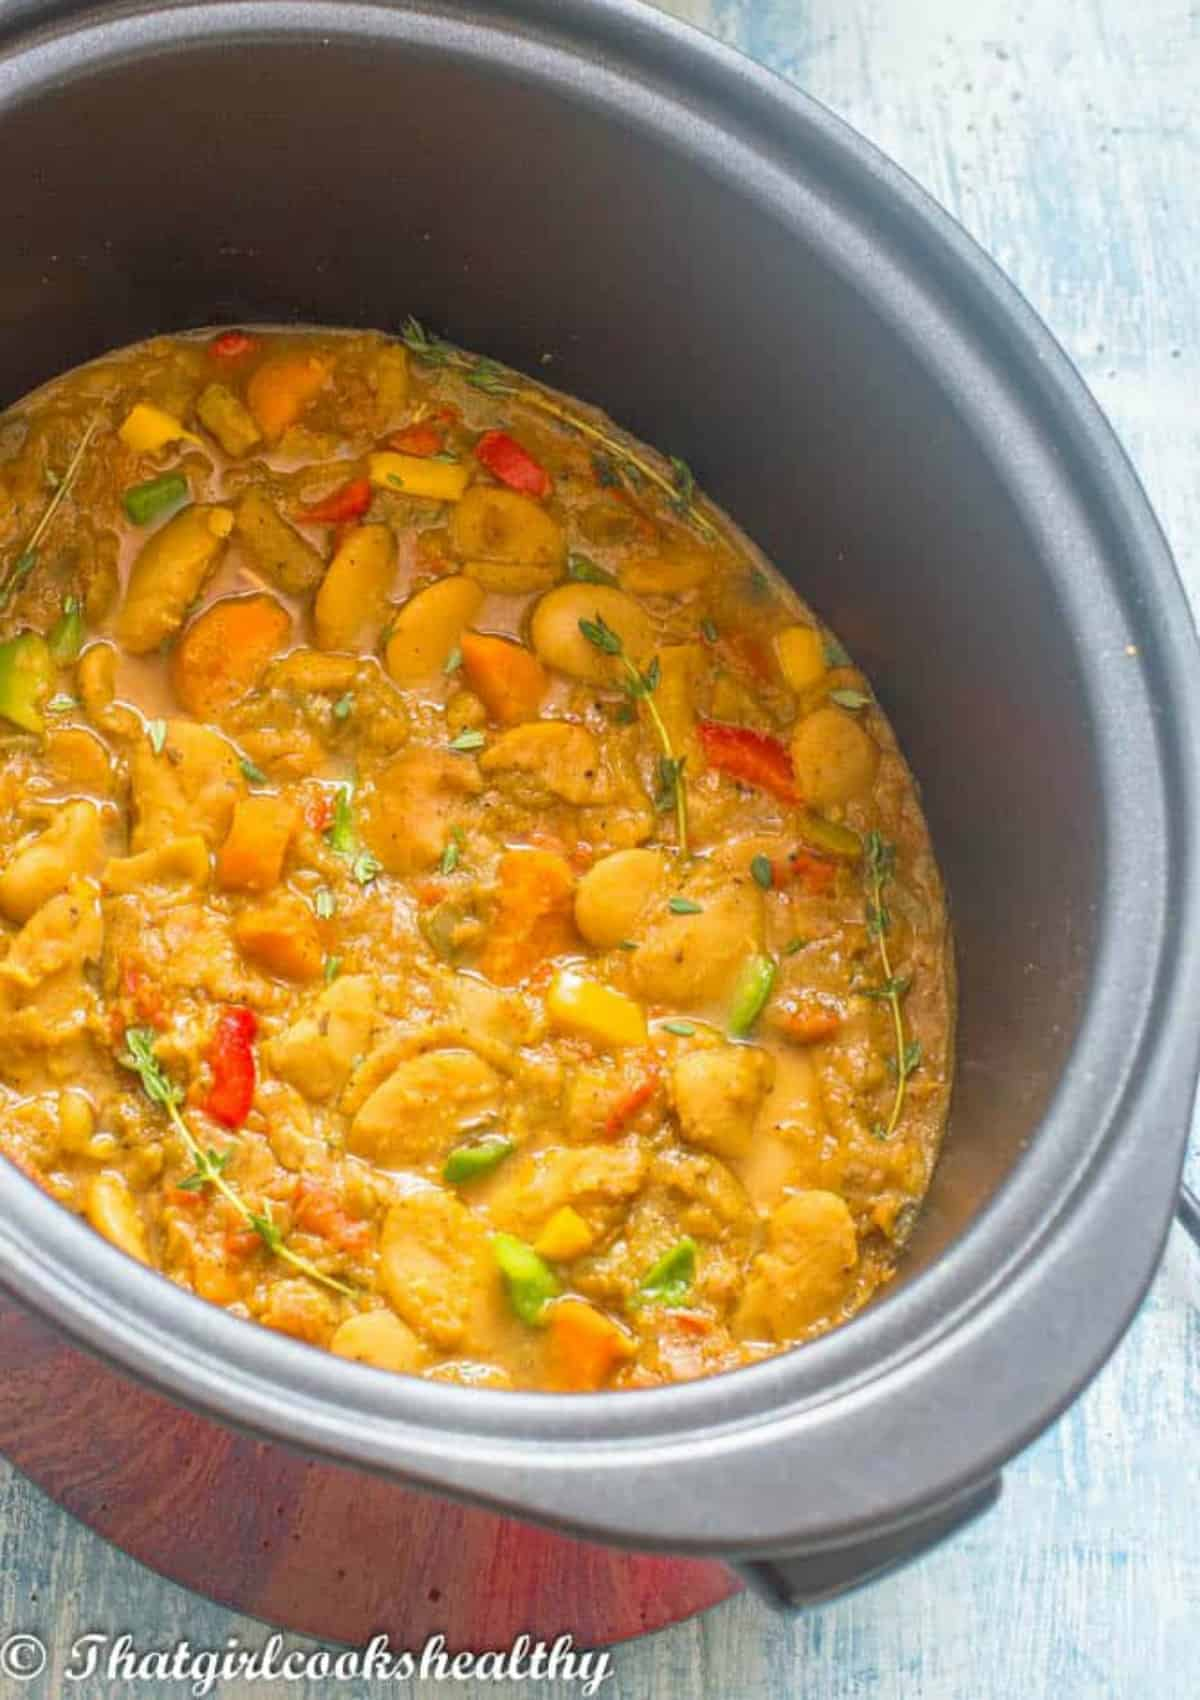 Angled view of the curry